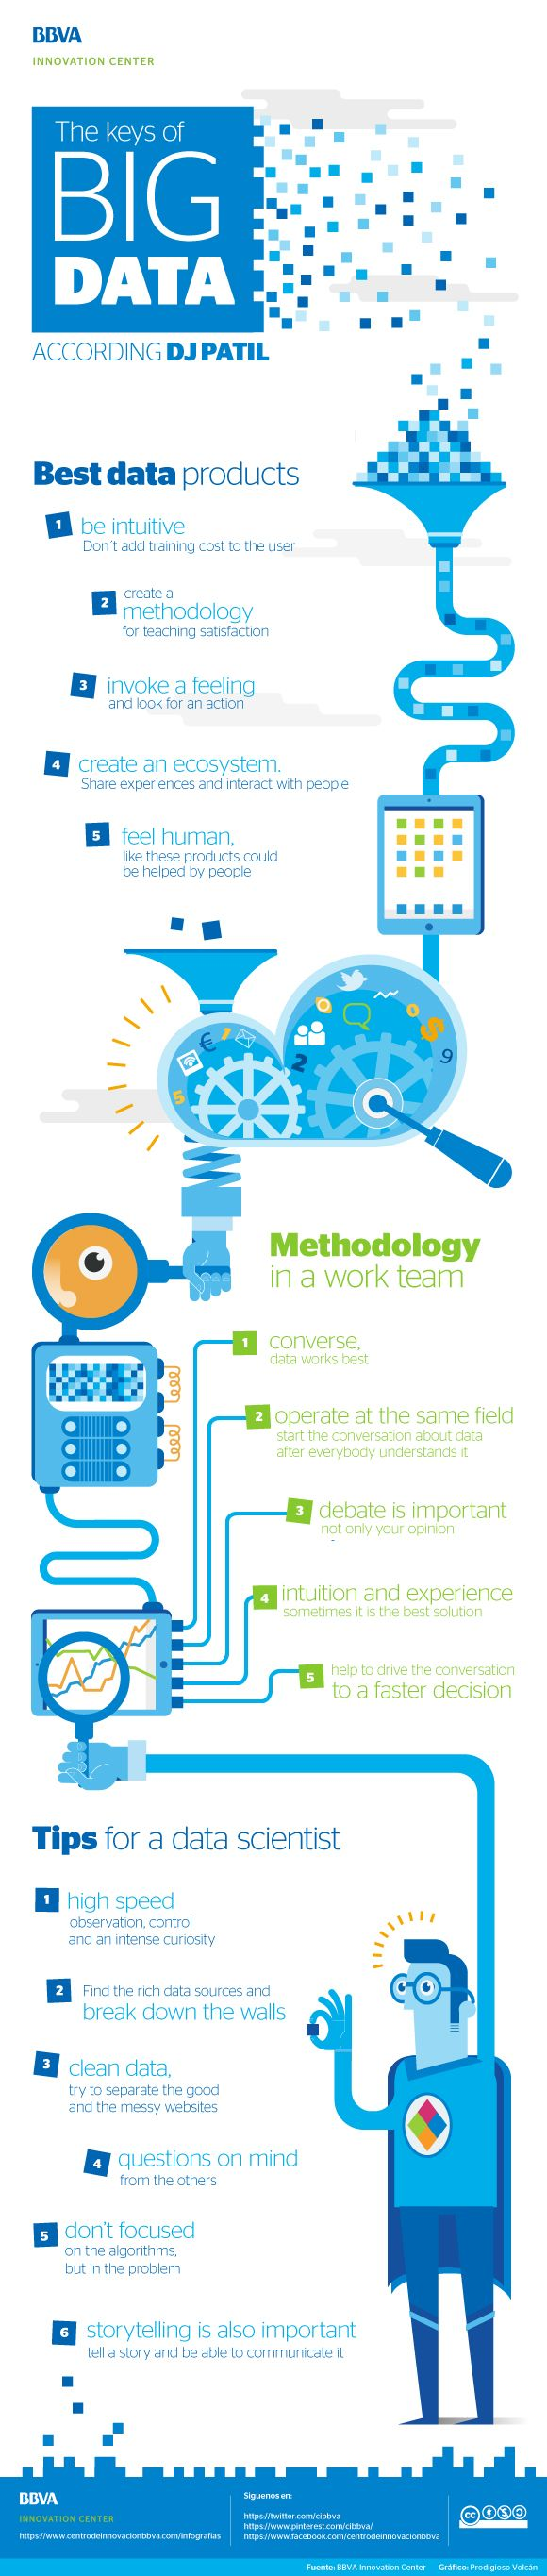 Infographic: the keys of Big Data by DJ Patil - BBVA Innovation Center